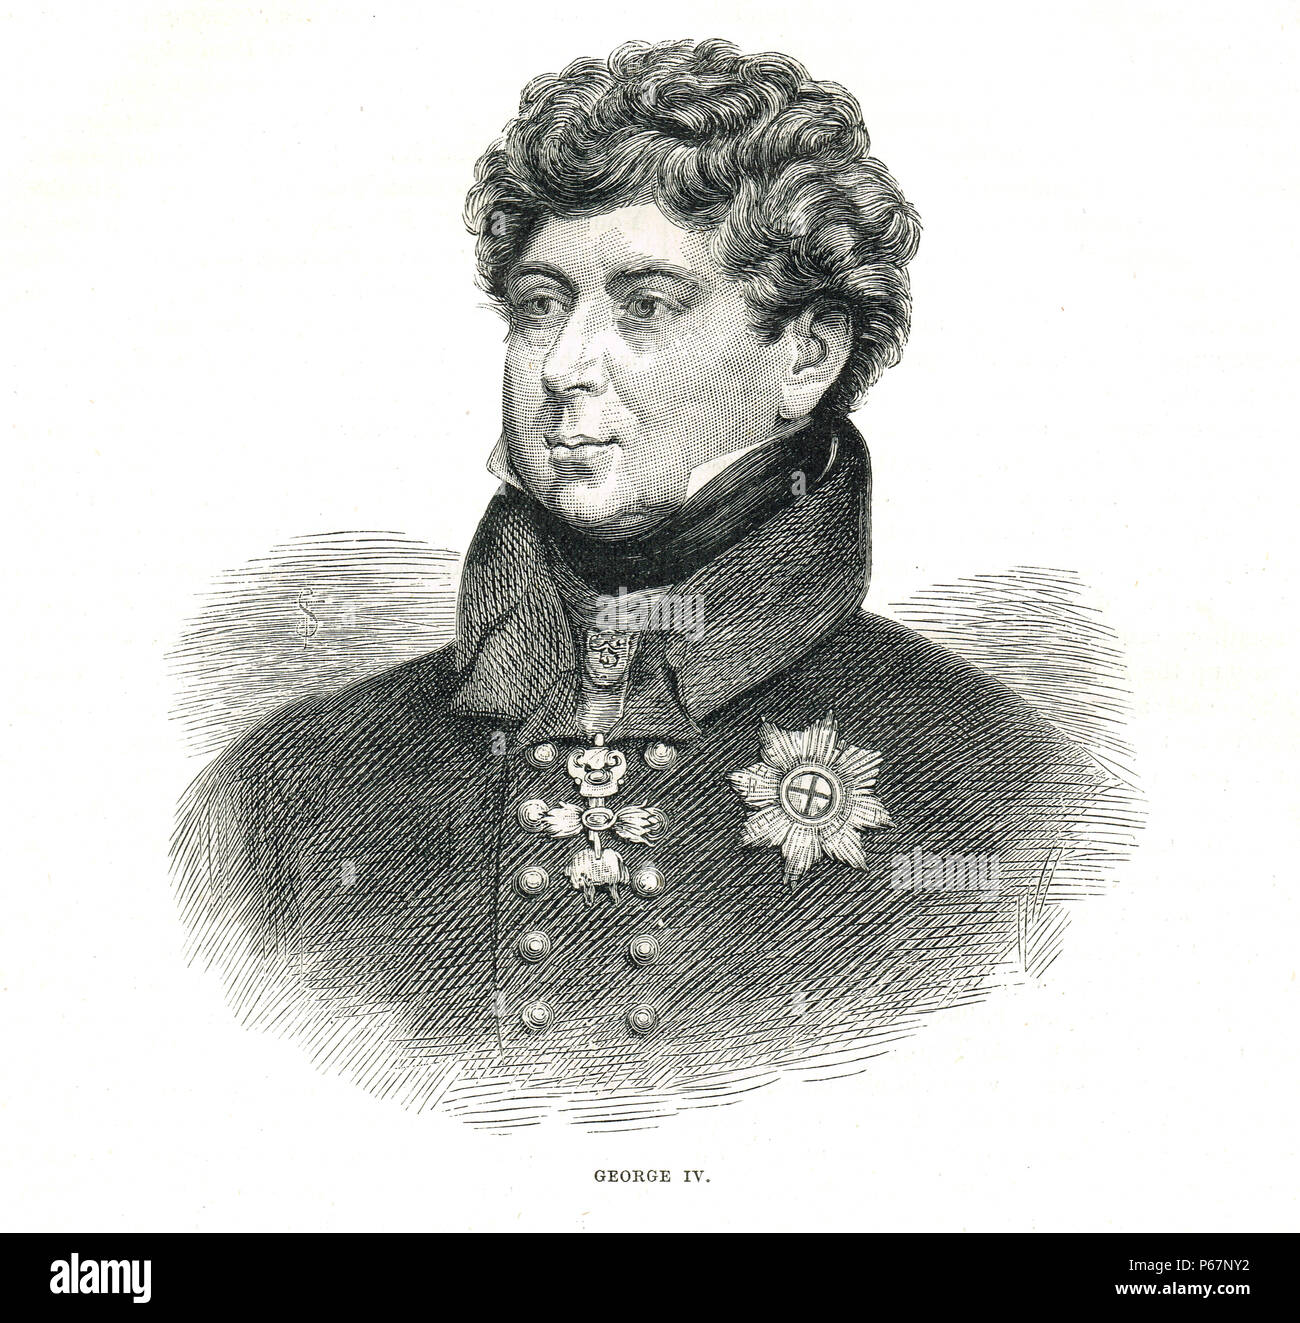 King George IV of the United Kingdom of Great Britain and Ireland, 1762-1830, reigned 1820-1830 - Stock Image